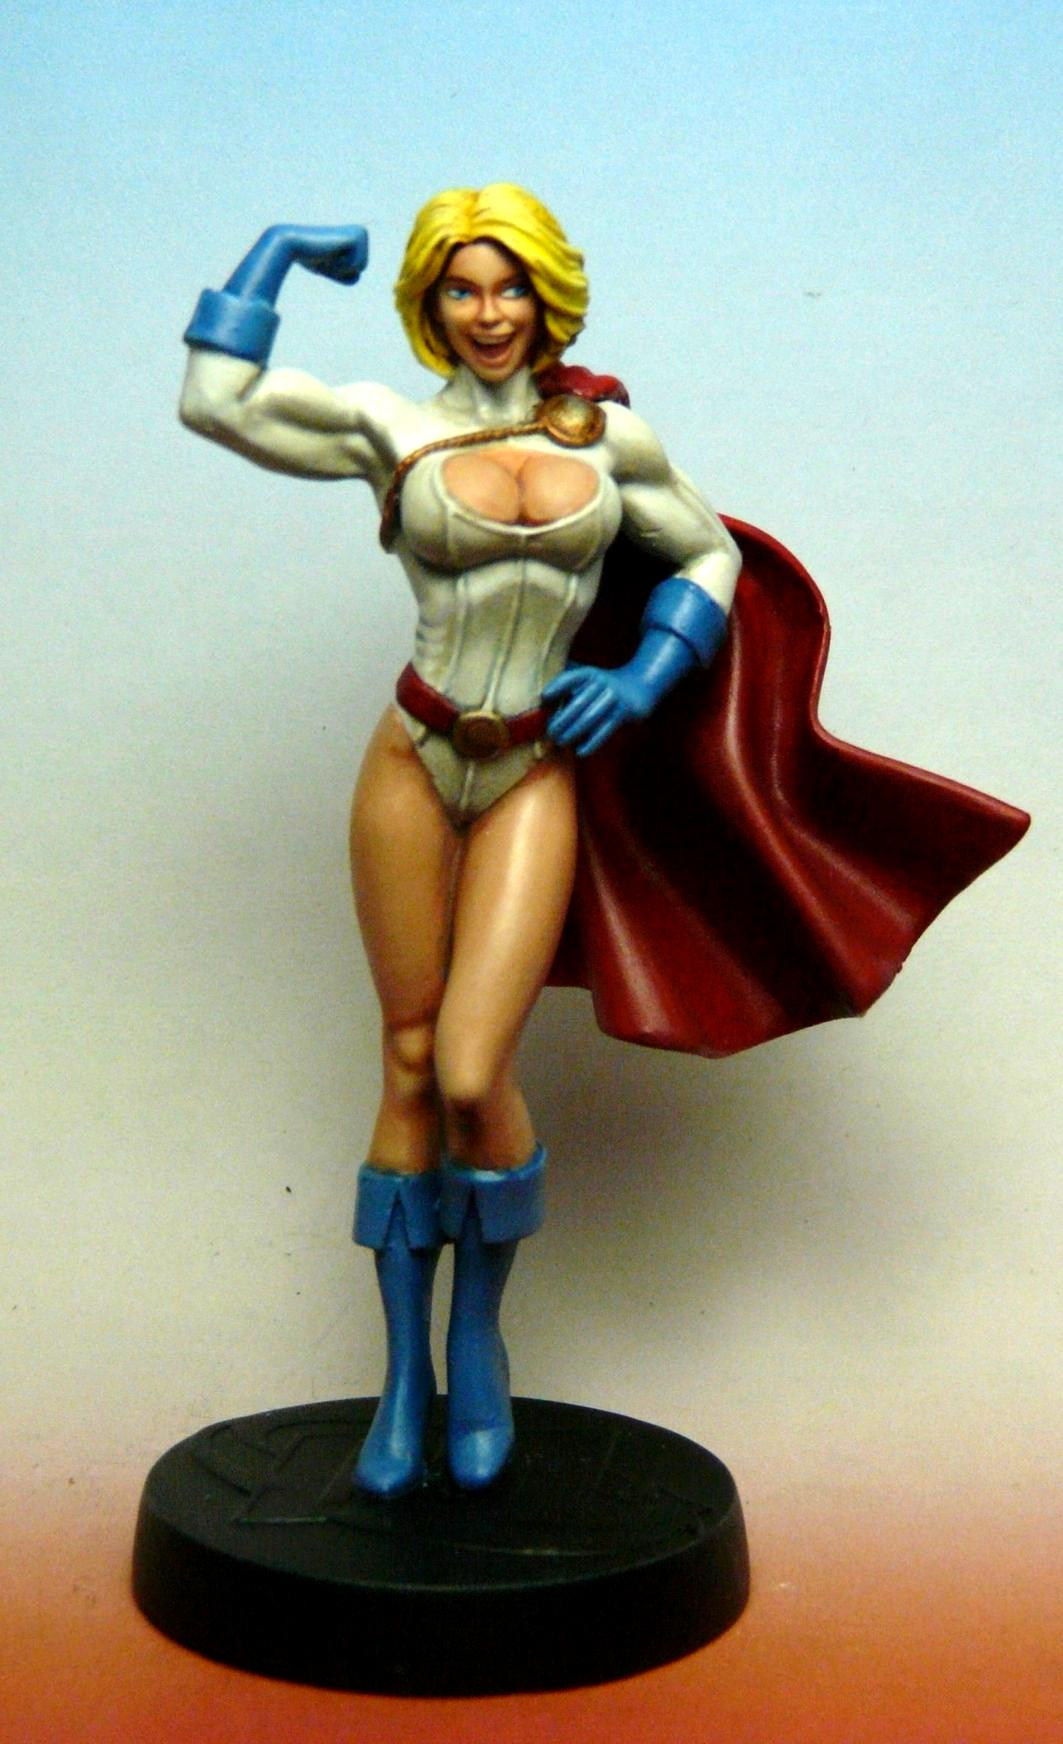 Comics, Dc, Justice Society Of America, Karen Starr, Power Girl, Superhero